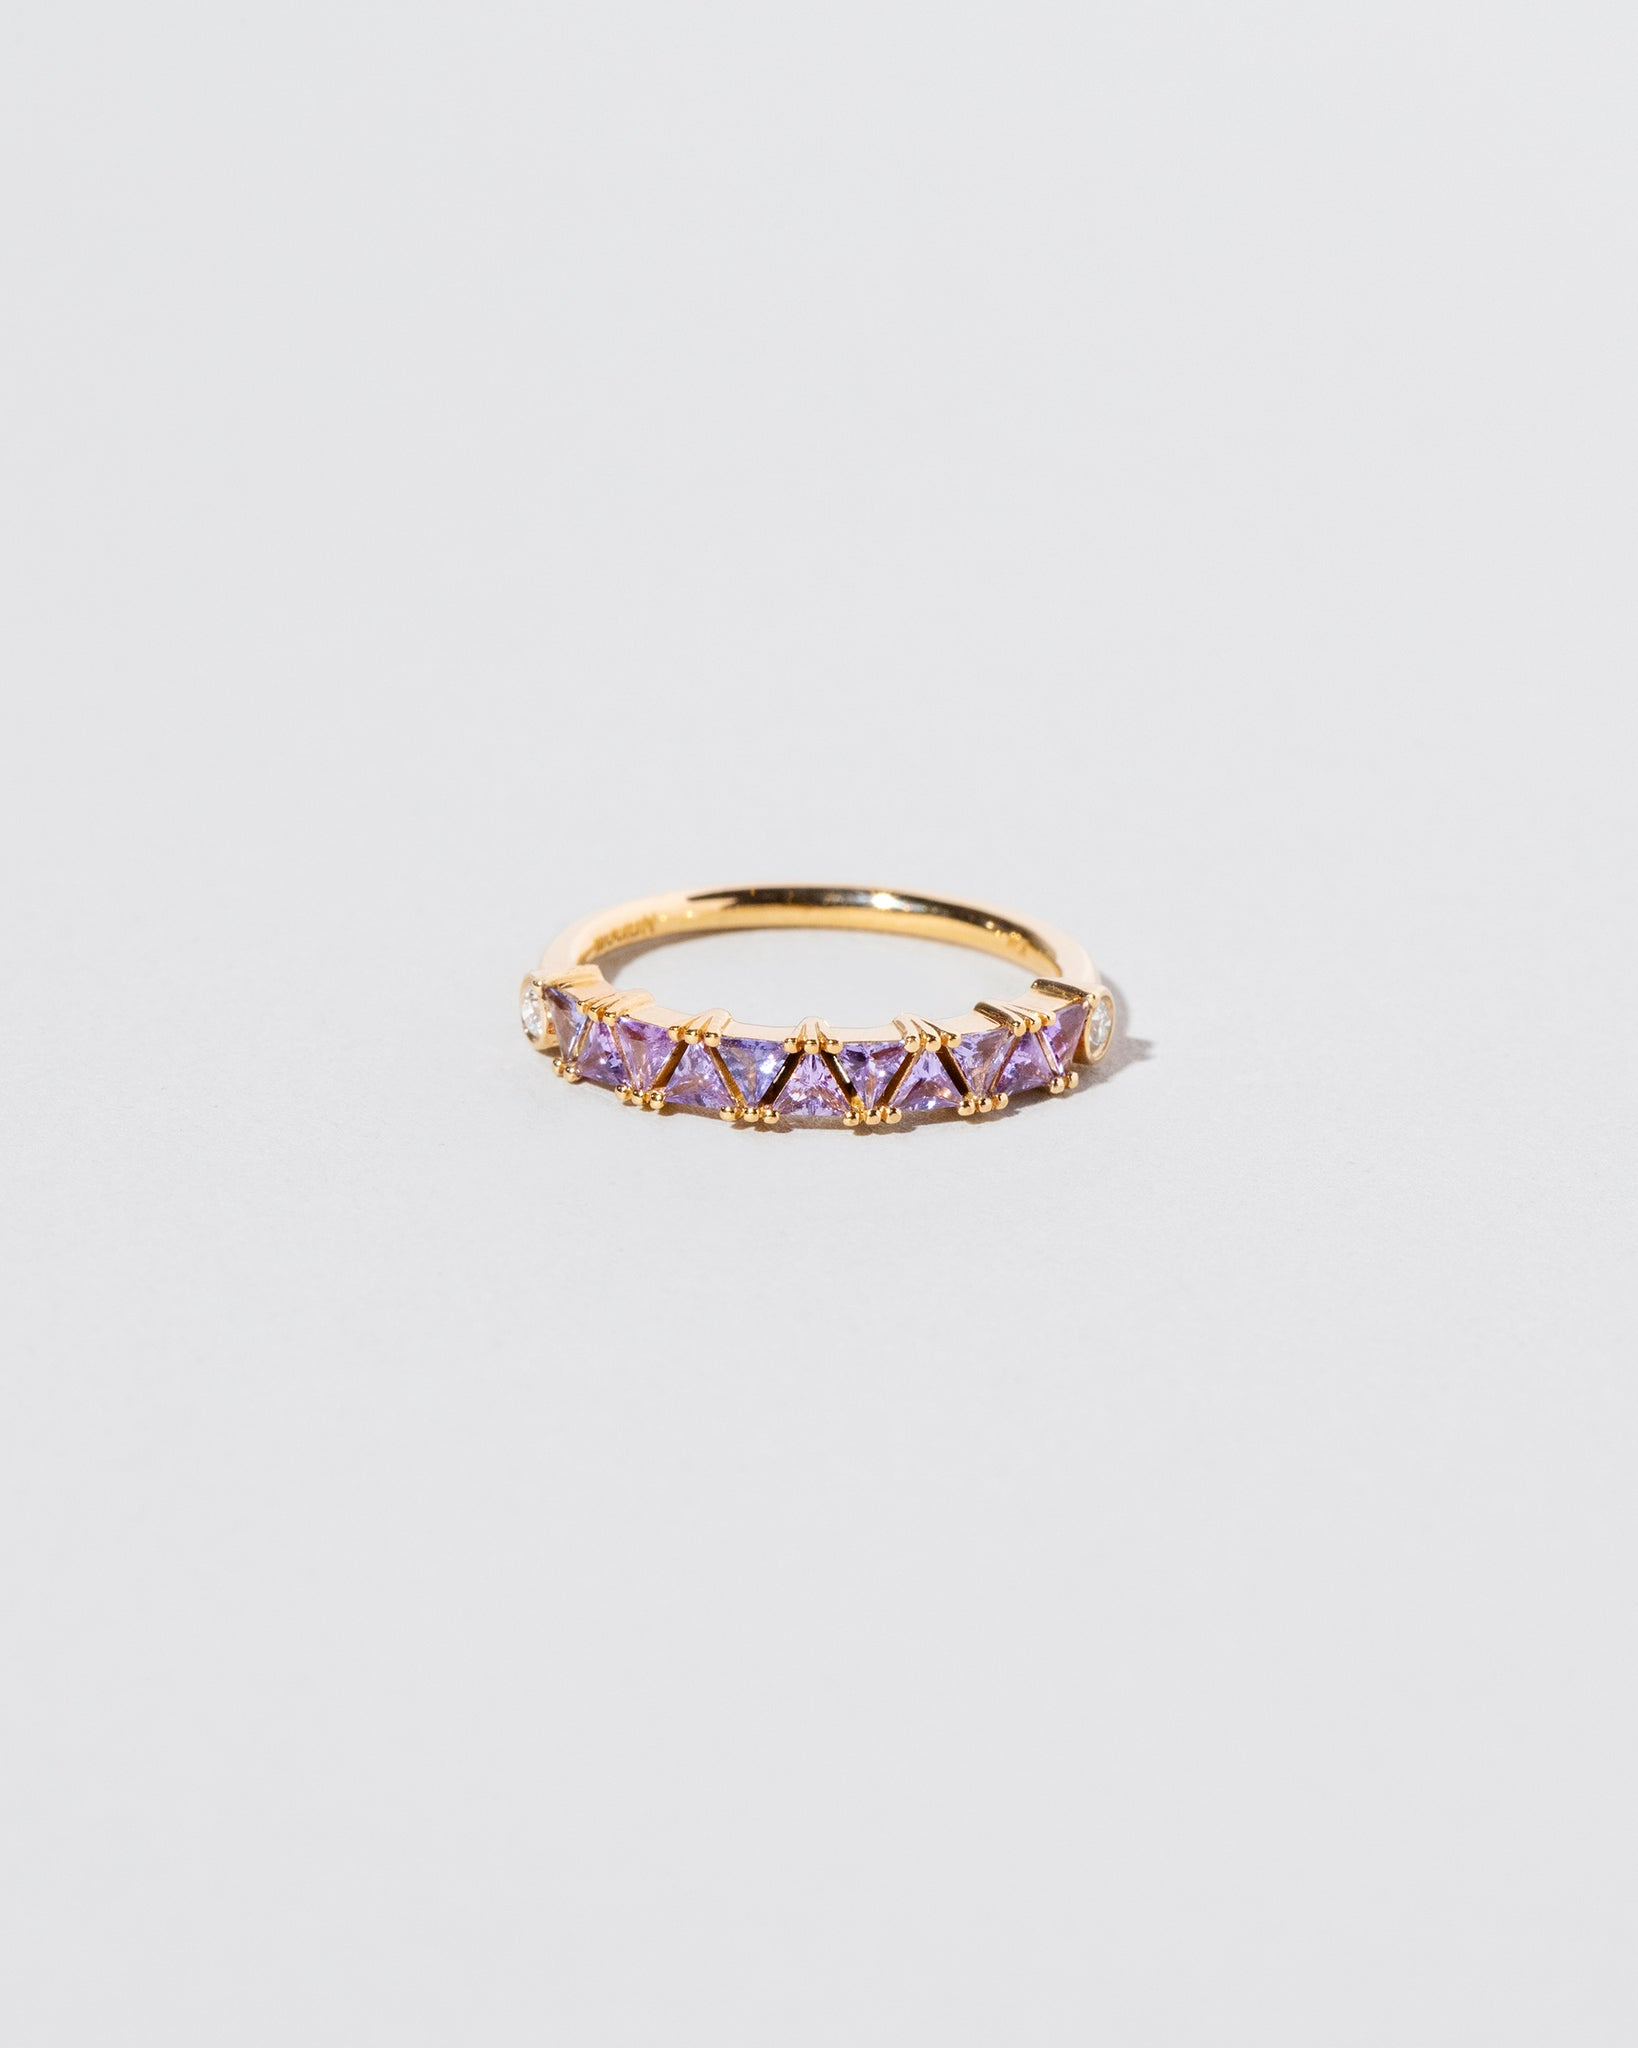 Eleven Trillion Ring - Lavender Sapphire on light color background